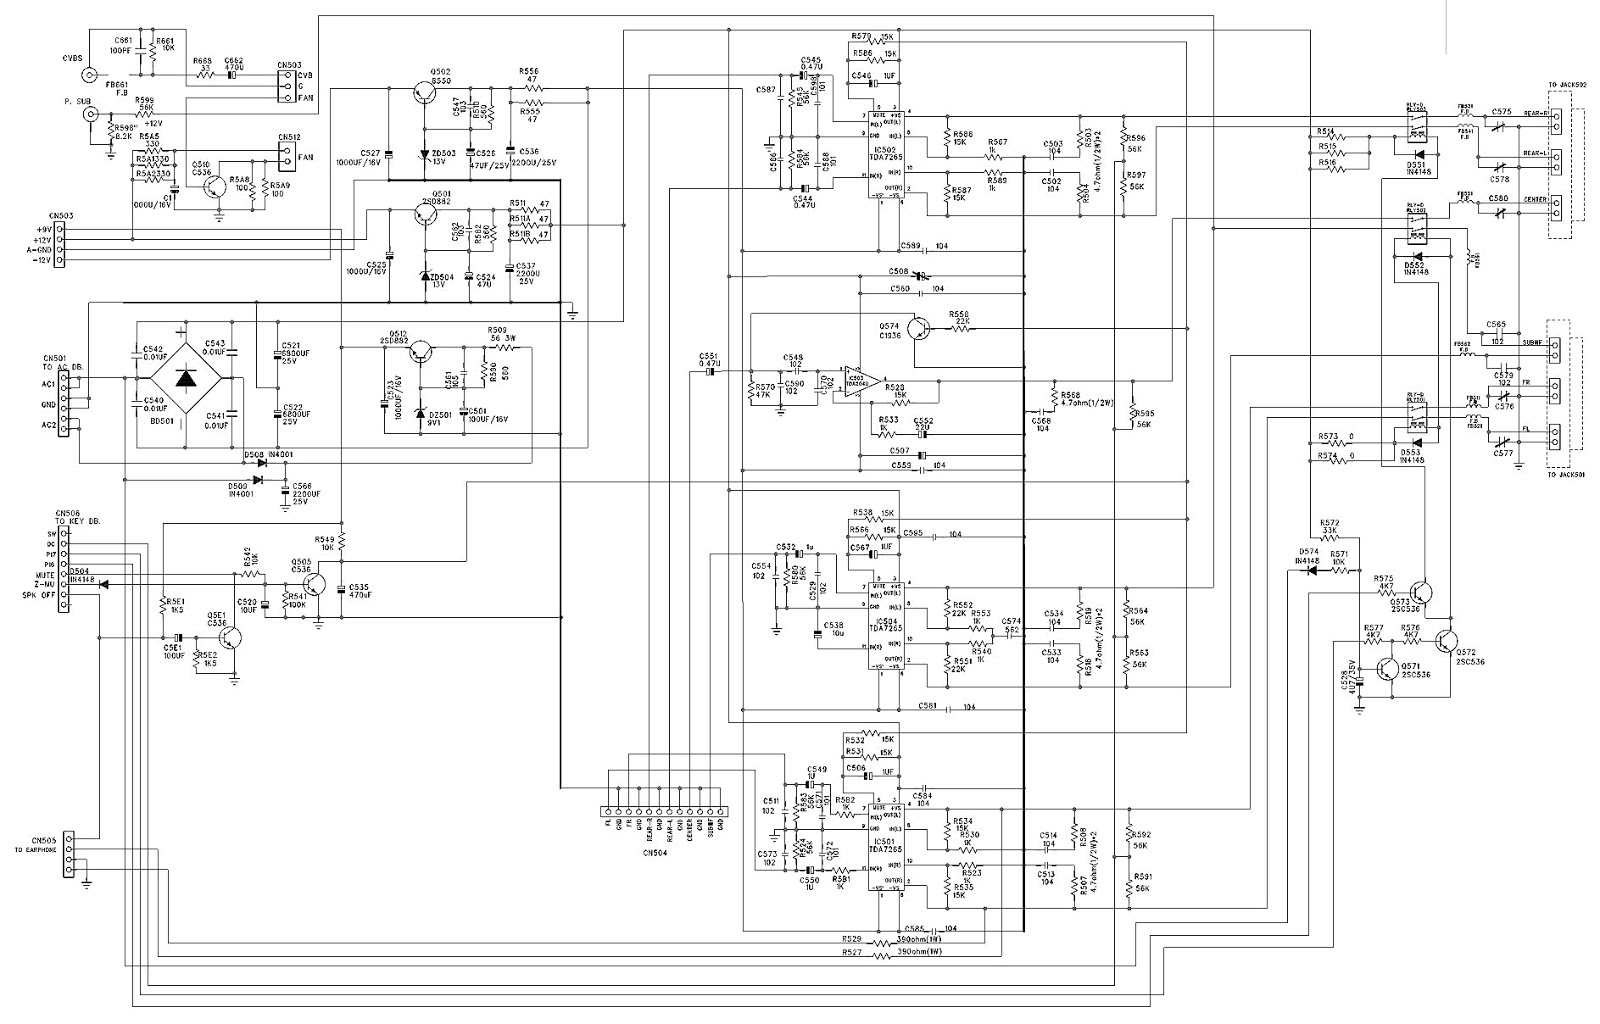 103 Dvd Wiring Diagram Akira Hts28dvd Home Theater System Schematic Diagram